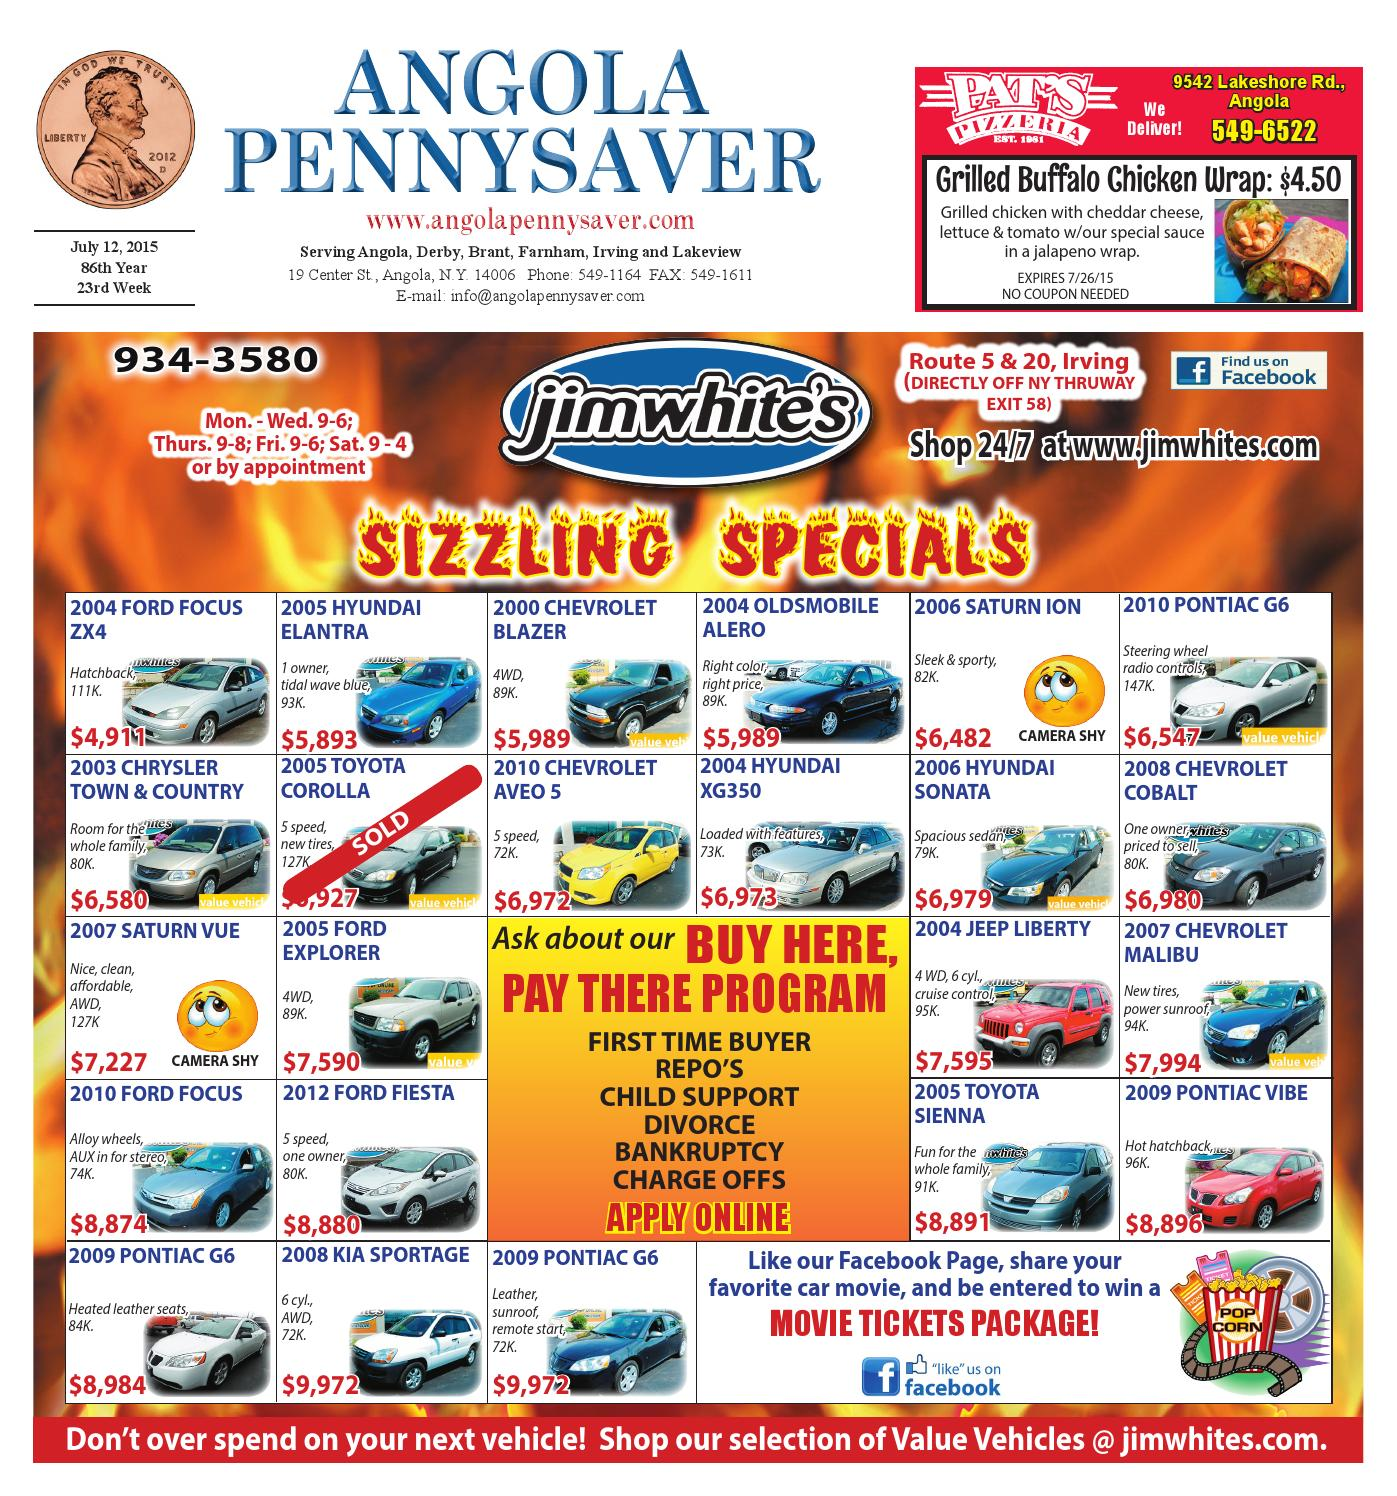 7 12 15 Angola Pennysaver By Issuu Peterson Fuel Filters